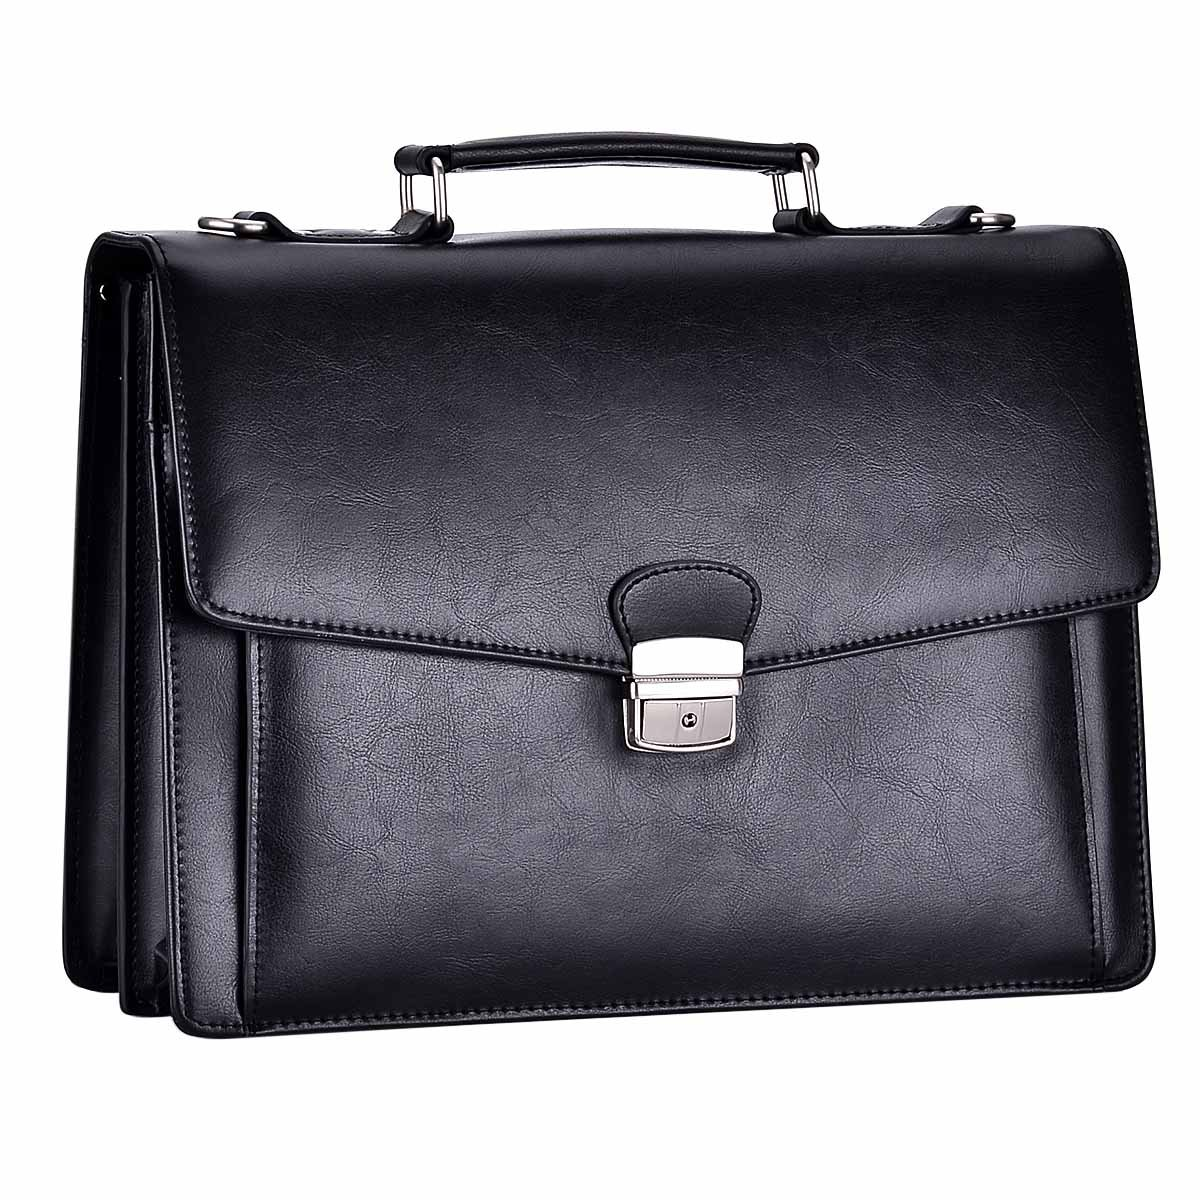 RUNWINDY Mens Leather Briefcase Cowhide HandBag with Lock (Black)